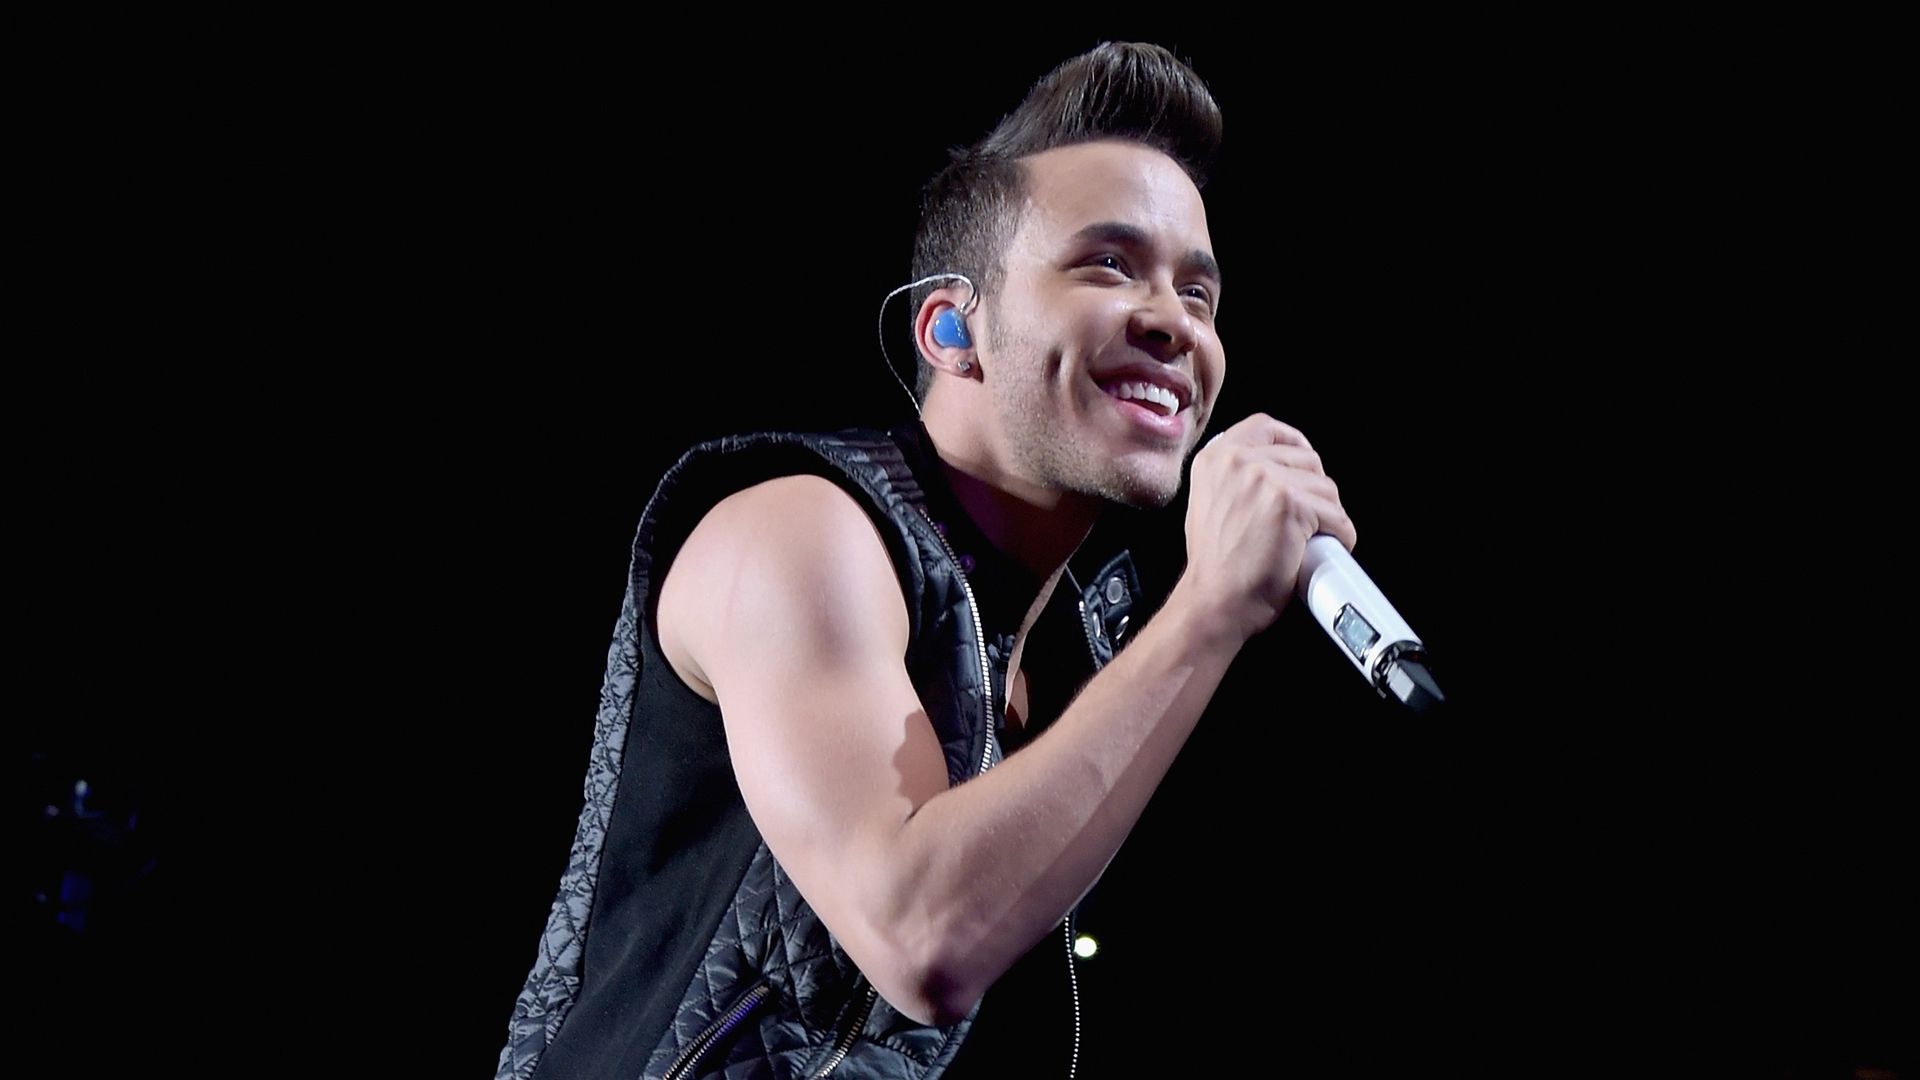 Prince Royce High Definition Wallpapers